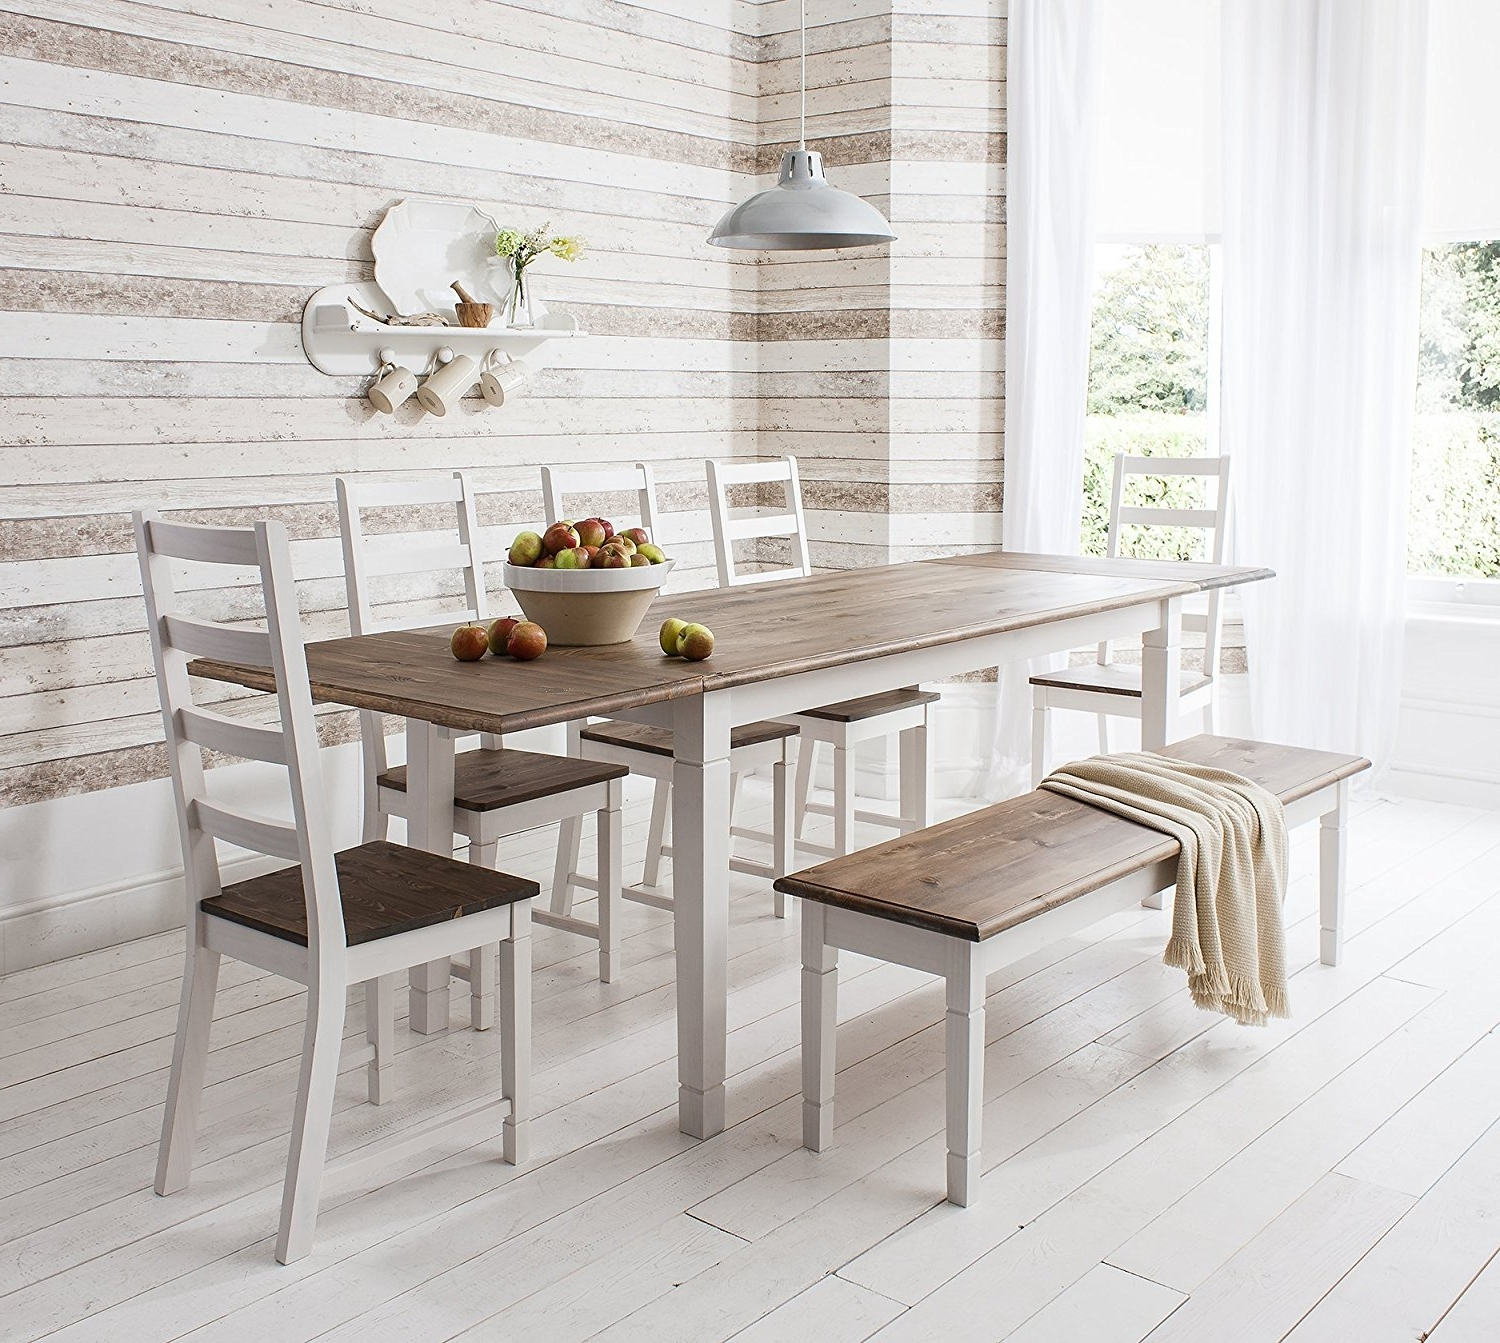 8 Seater Dark Wood Dining Table And Chairs – Dining Tables Ideas With Current Extendable Dining Tables With 8 Seats (View 24 of 25)